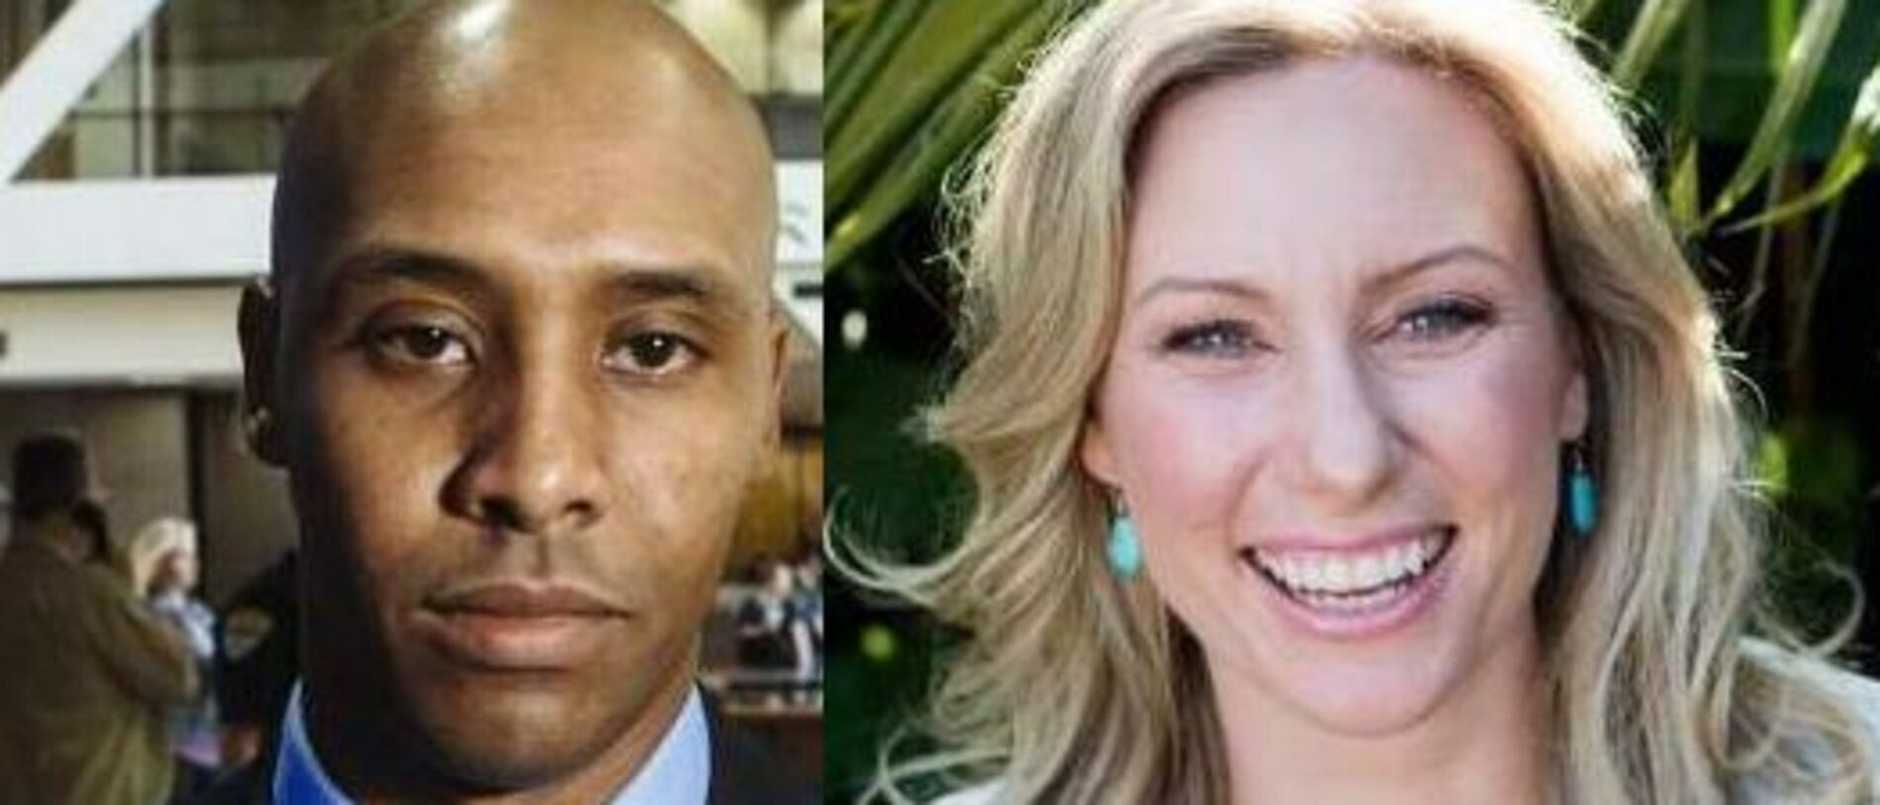 A decision has been reached on an appeal by a US police officer to throw out his murder conviction for killing Australian Justine Damond in 2017.